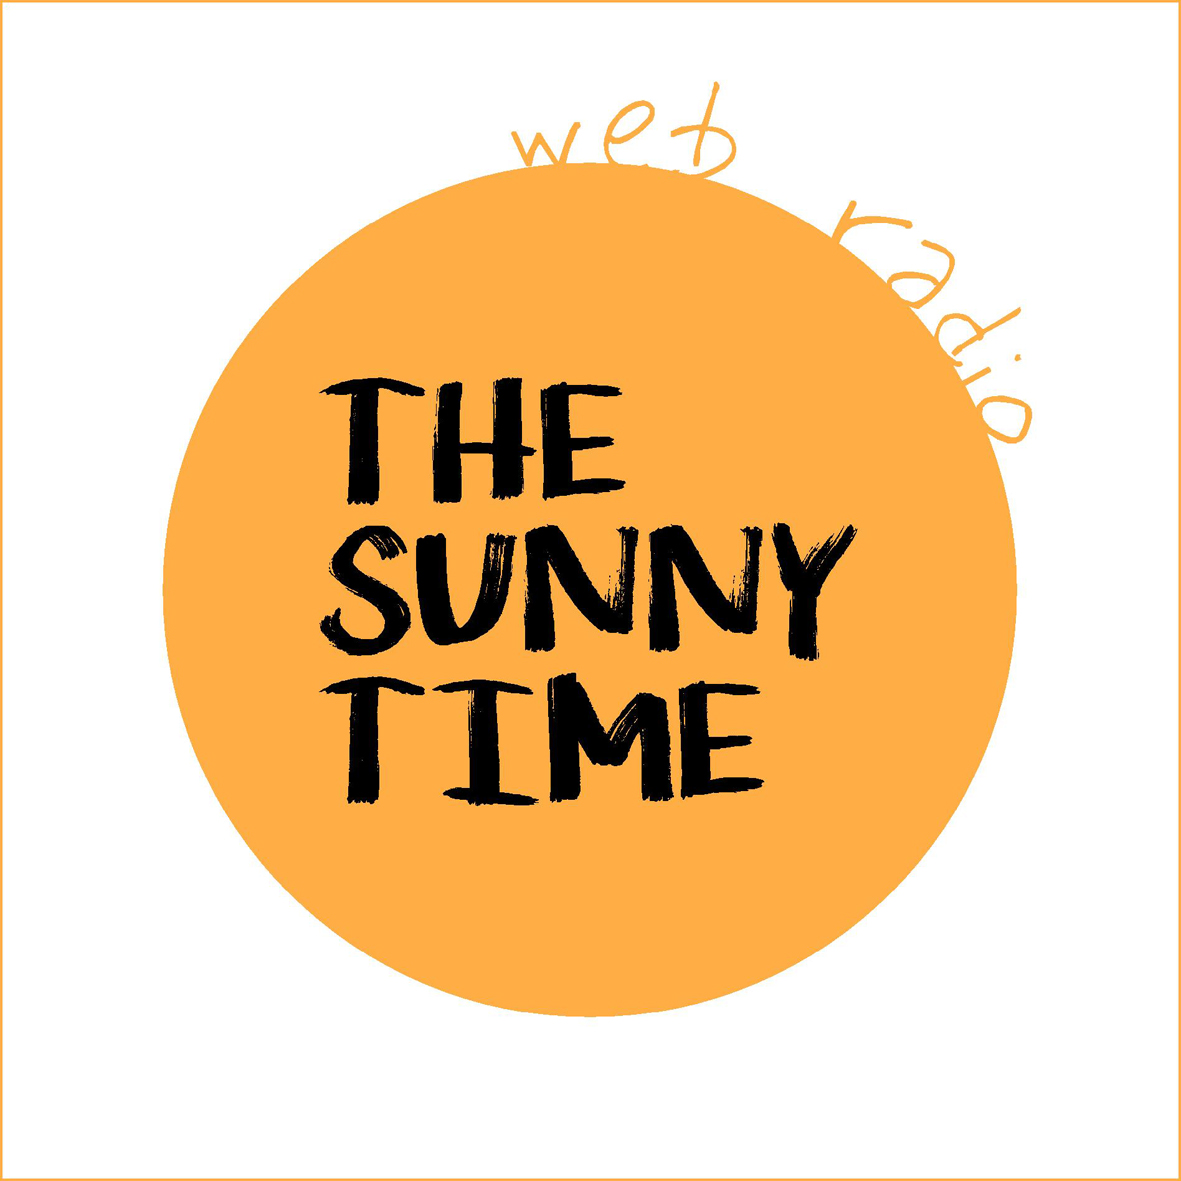 Art for THE SUNNY TIME by The Sunny Time